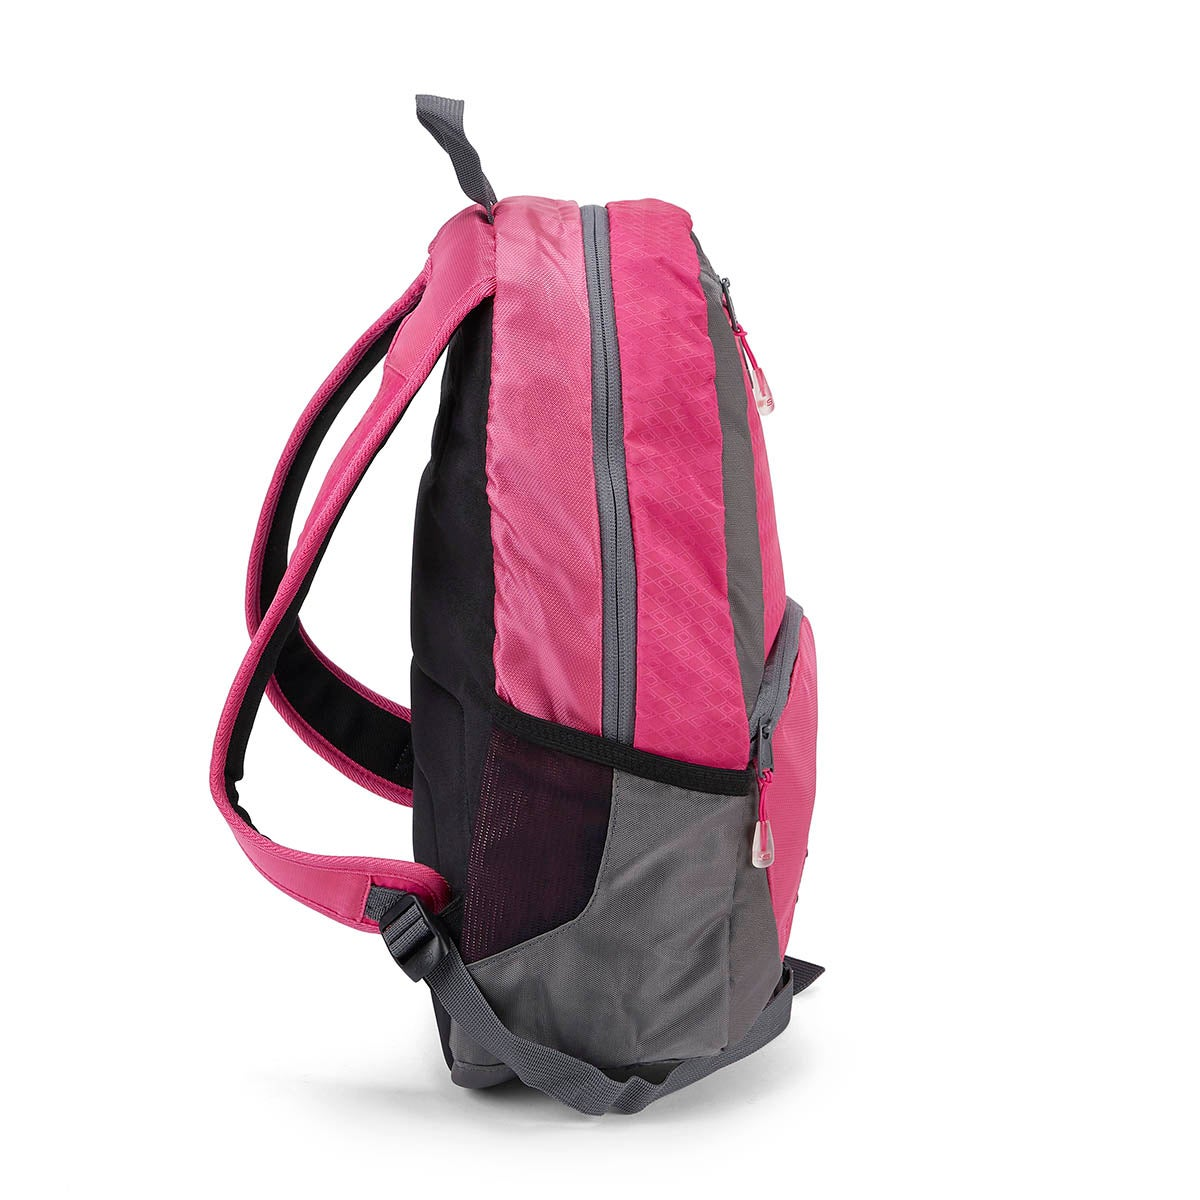 Lds Speedway Overdrive pink backpack